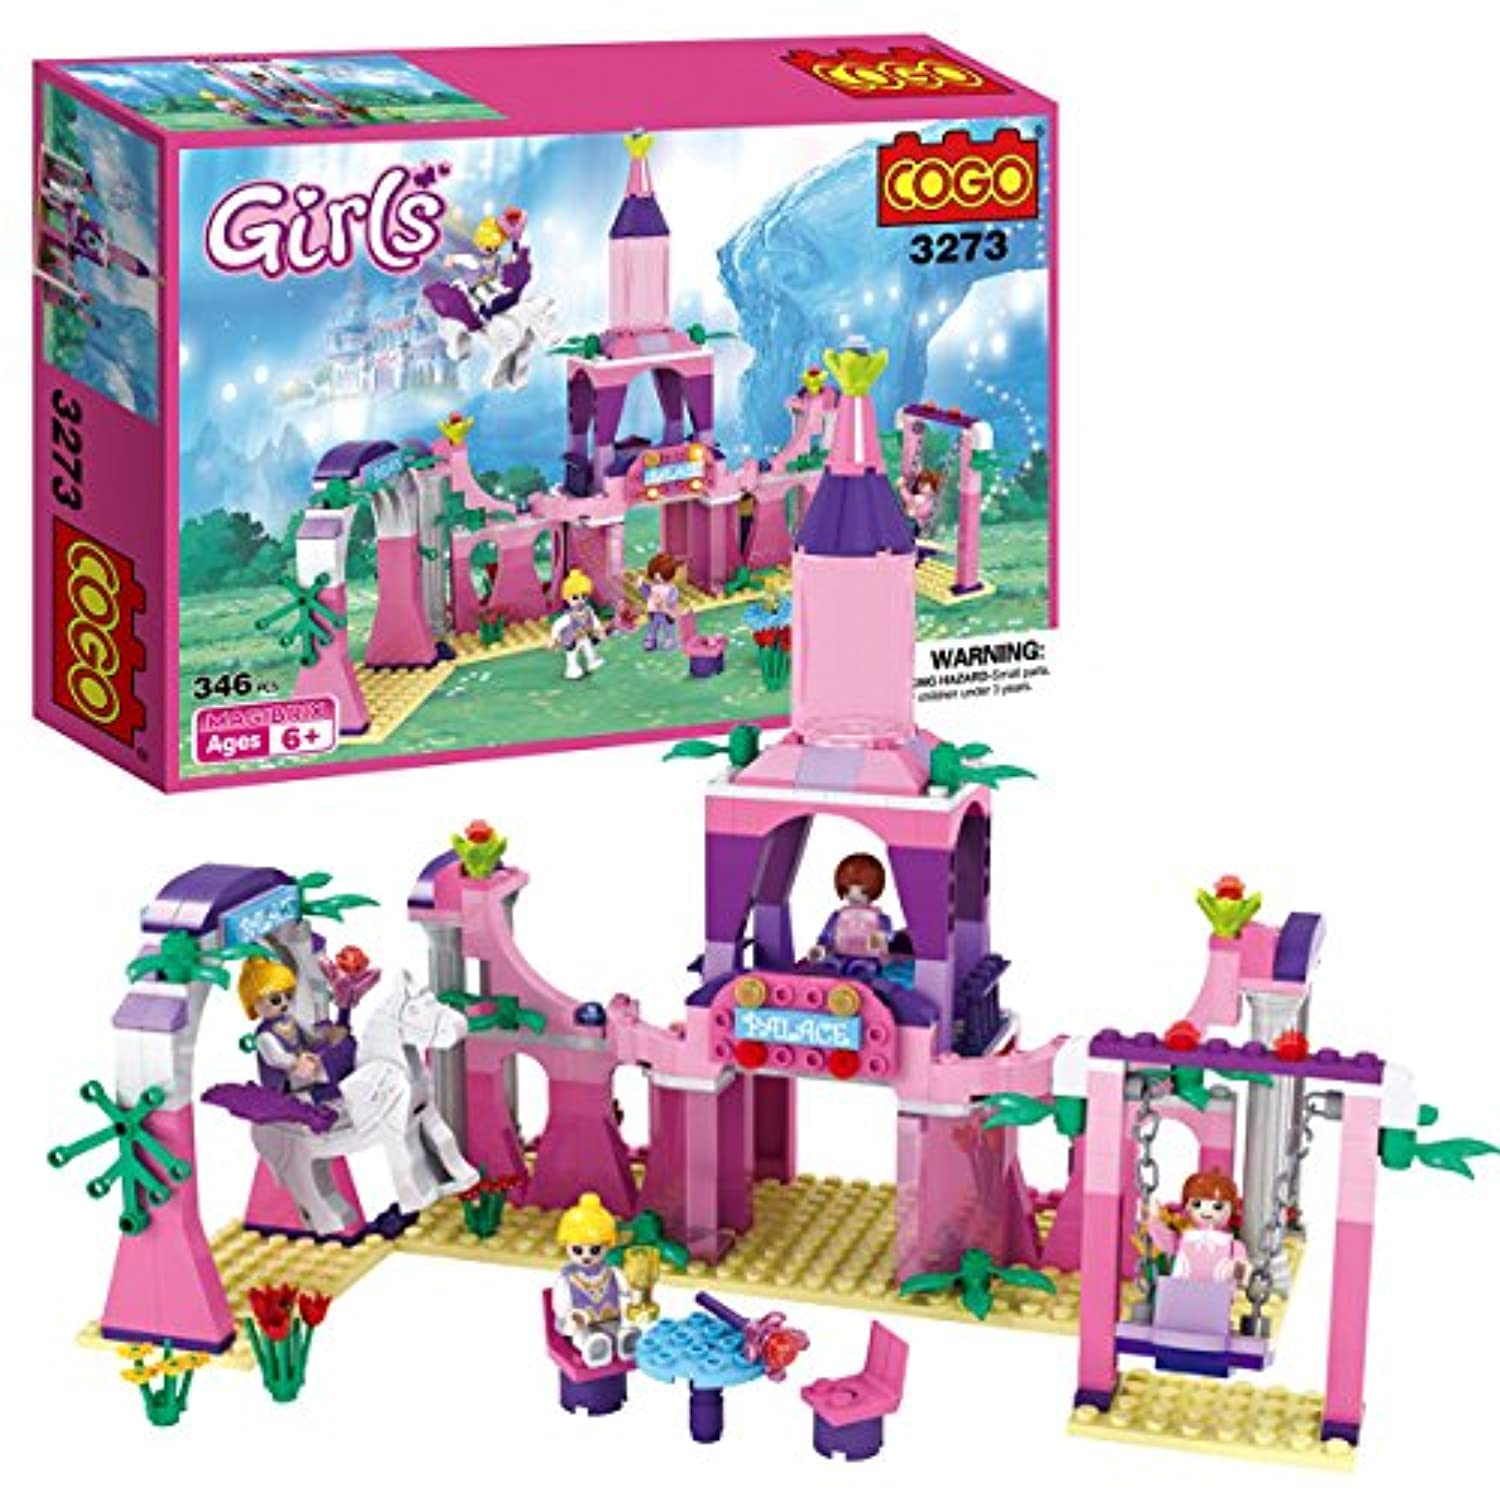 COGO Girls Blocks Magical Castle the Dream Magical World Enchanted Palace Construction Toys Play Set . Girls Christmas Gift for Girls Kids 3273C 346 Pcs